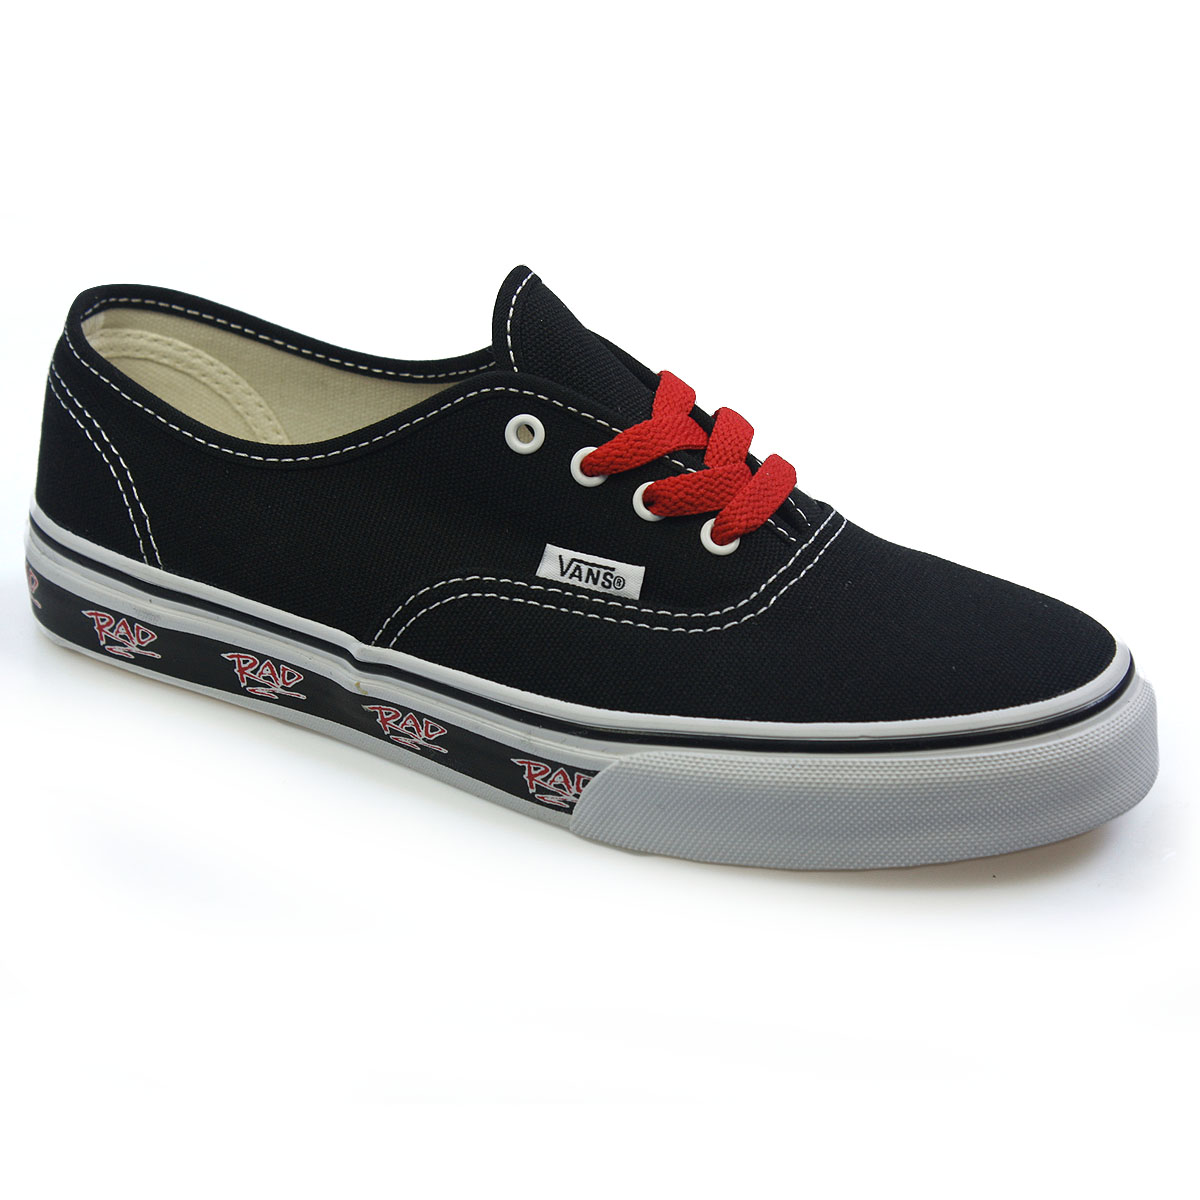 Vans Authentic Rad Pack Kids Red Black Canvas Trainers Sneakers ...